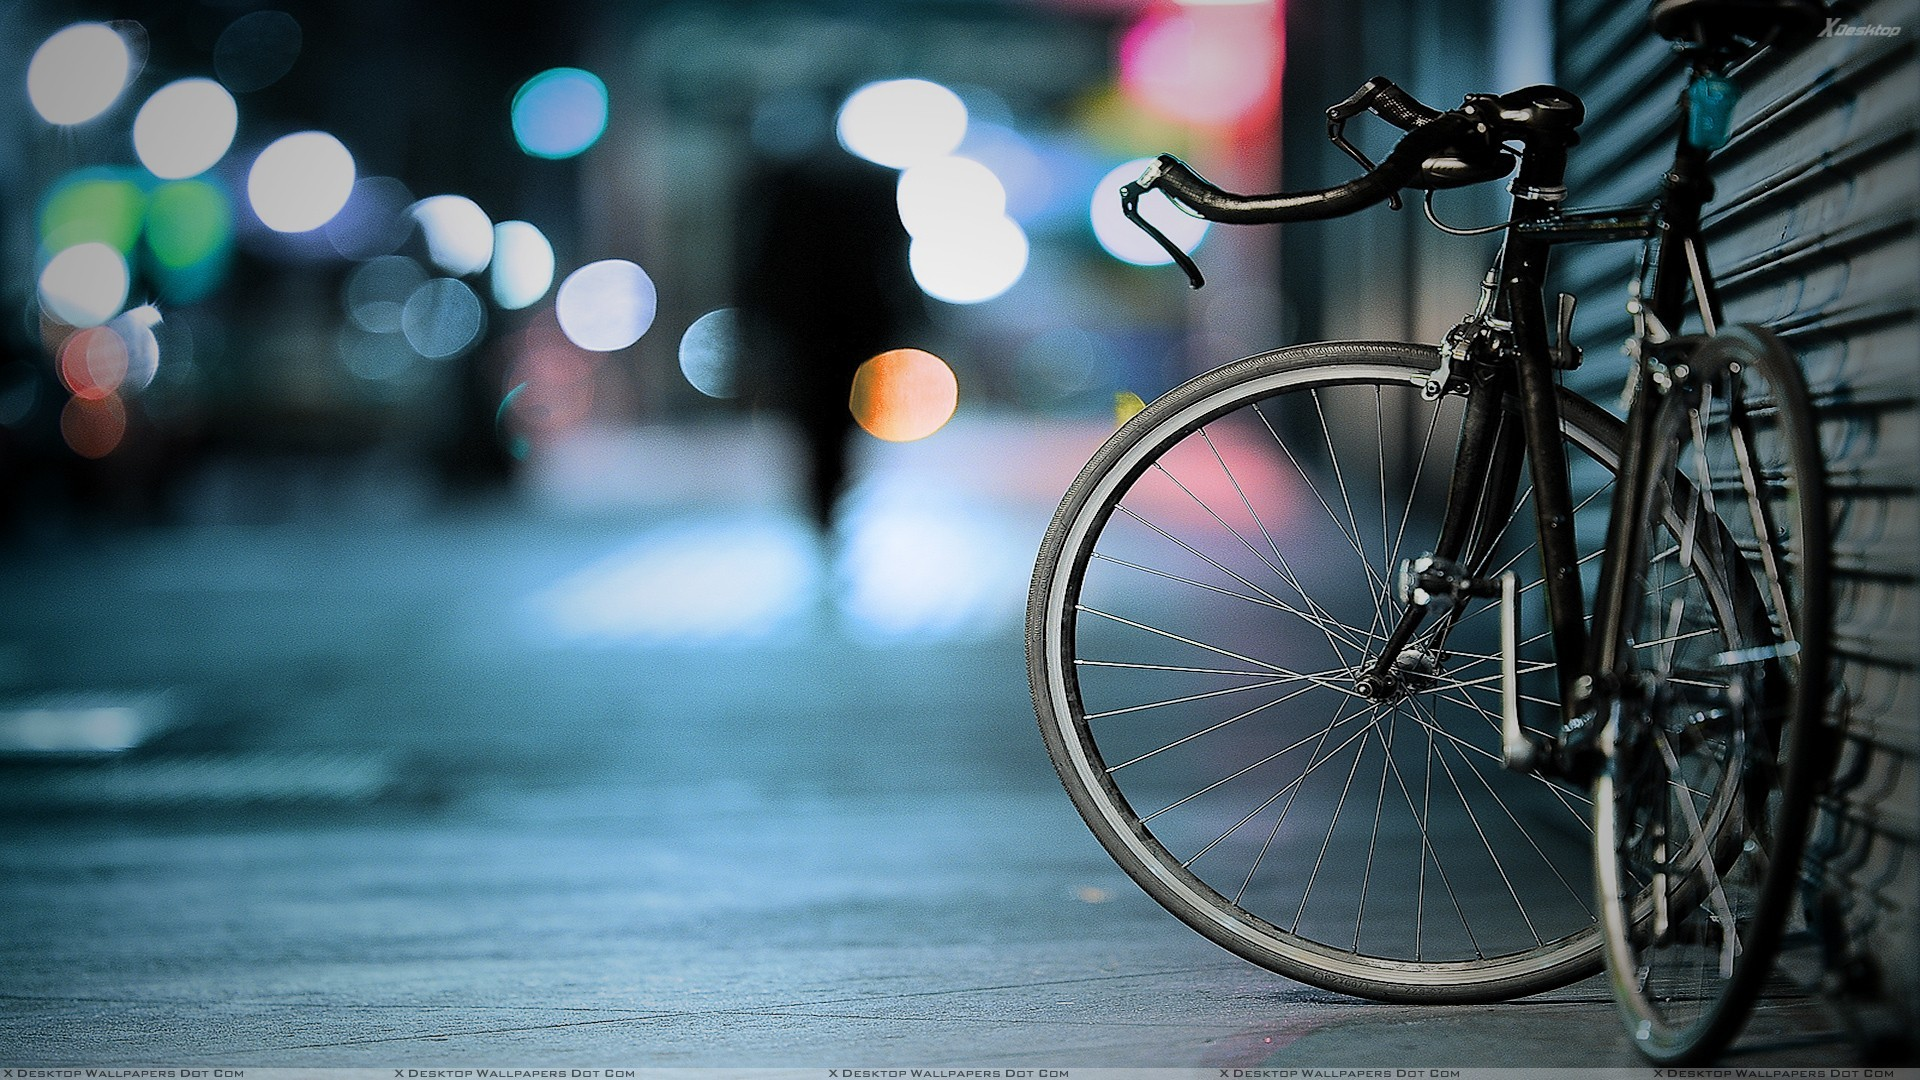 … road bicycle wallpaper bicycle model ideas …